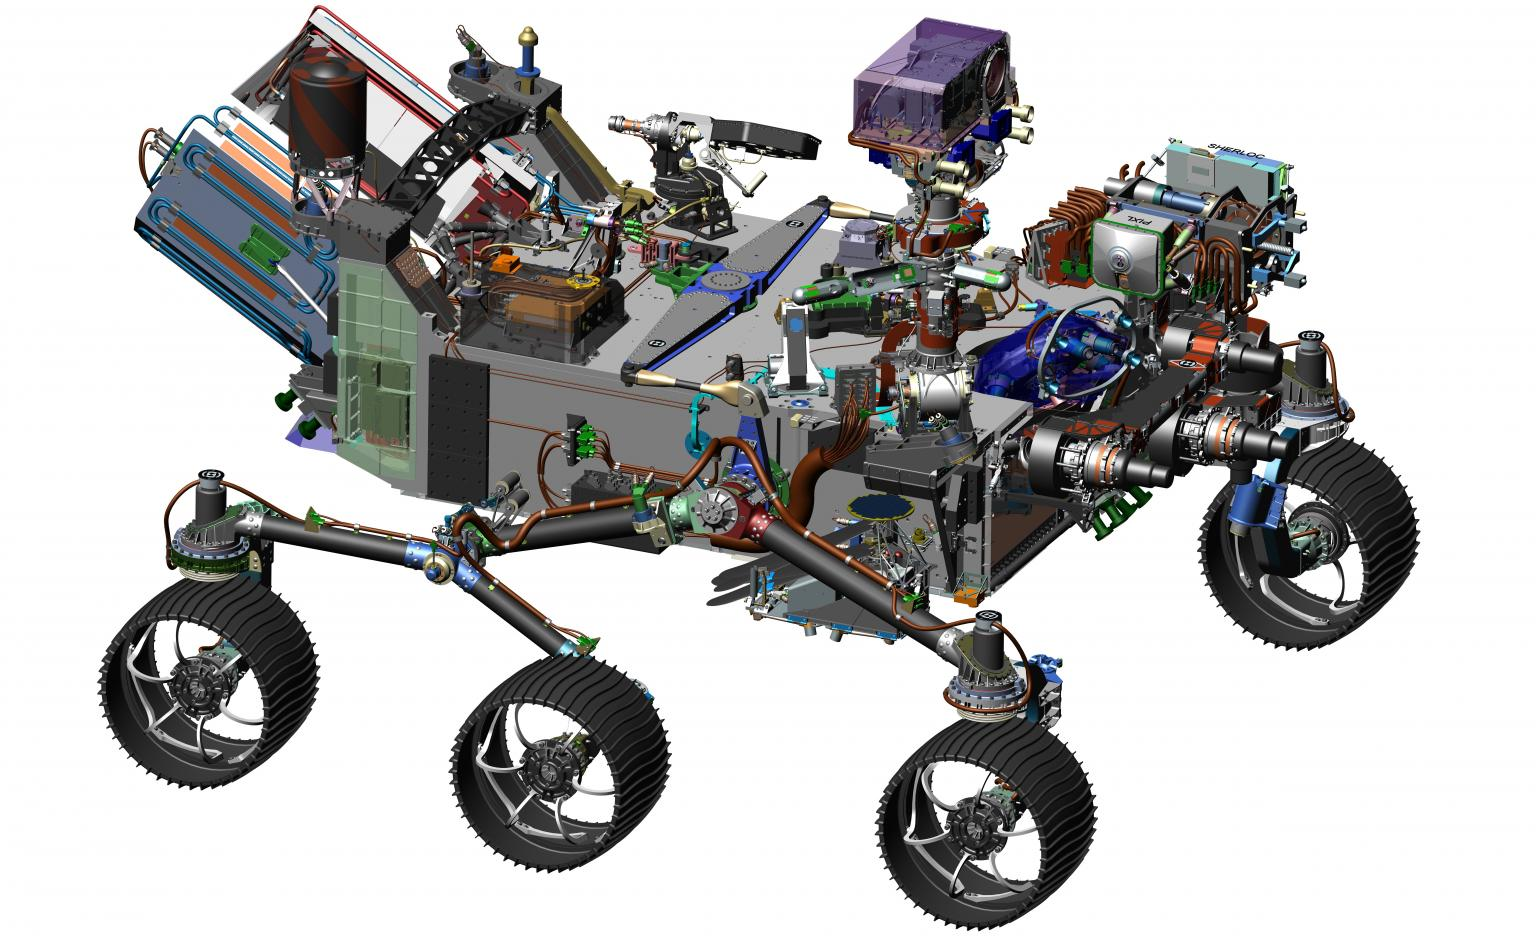 A CAD image of the Mars Rover, whose radar system will be equipped with blind rivets from TR Fastenings